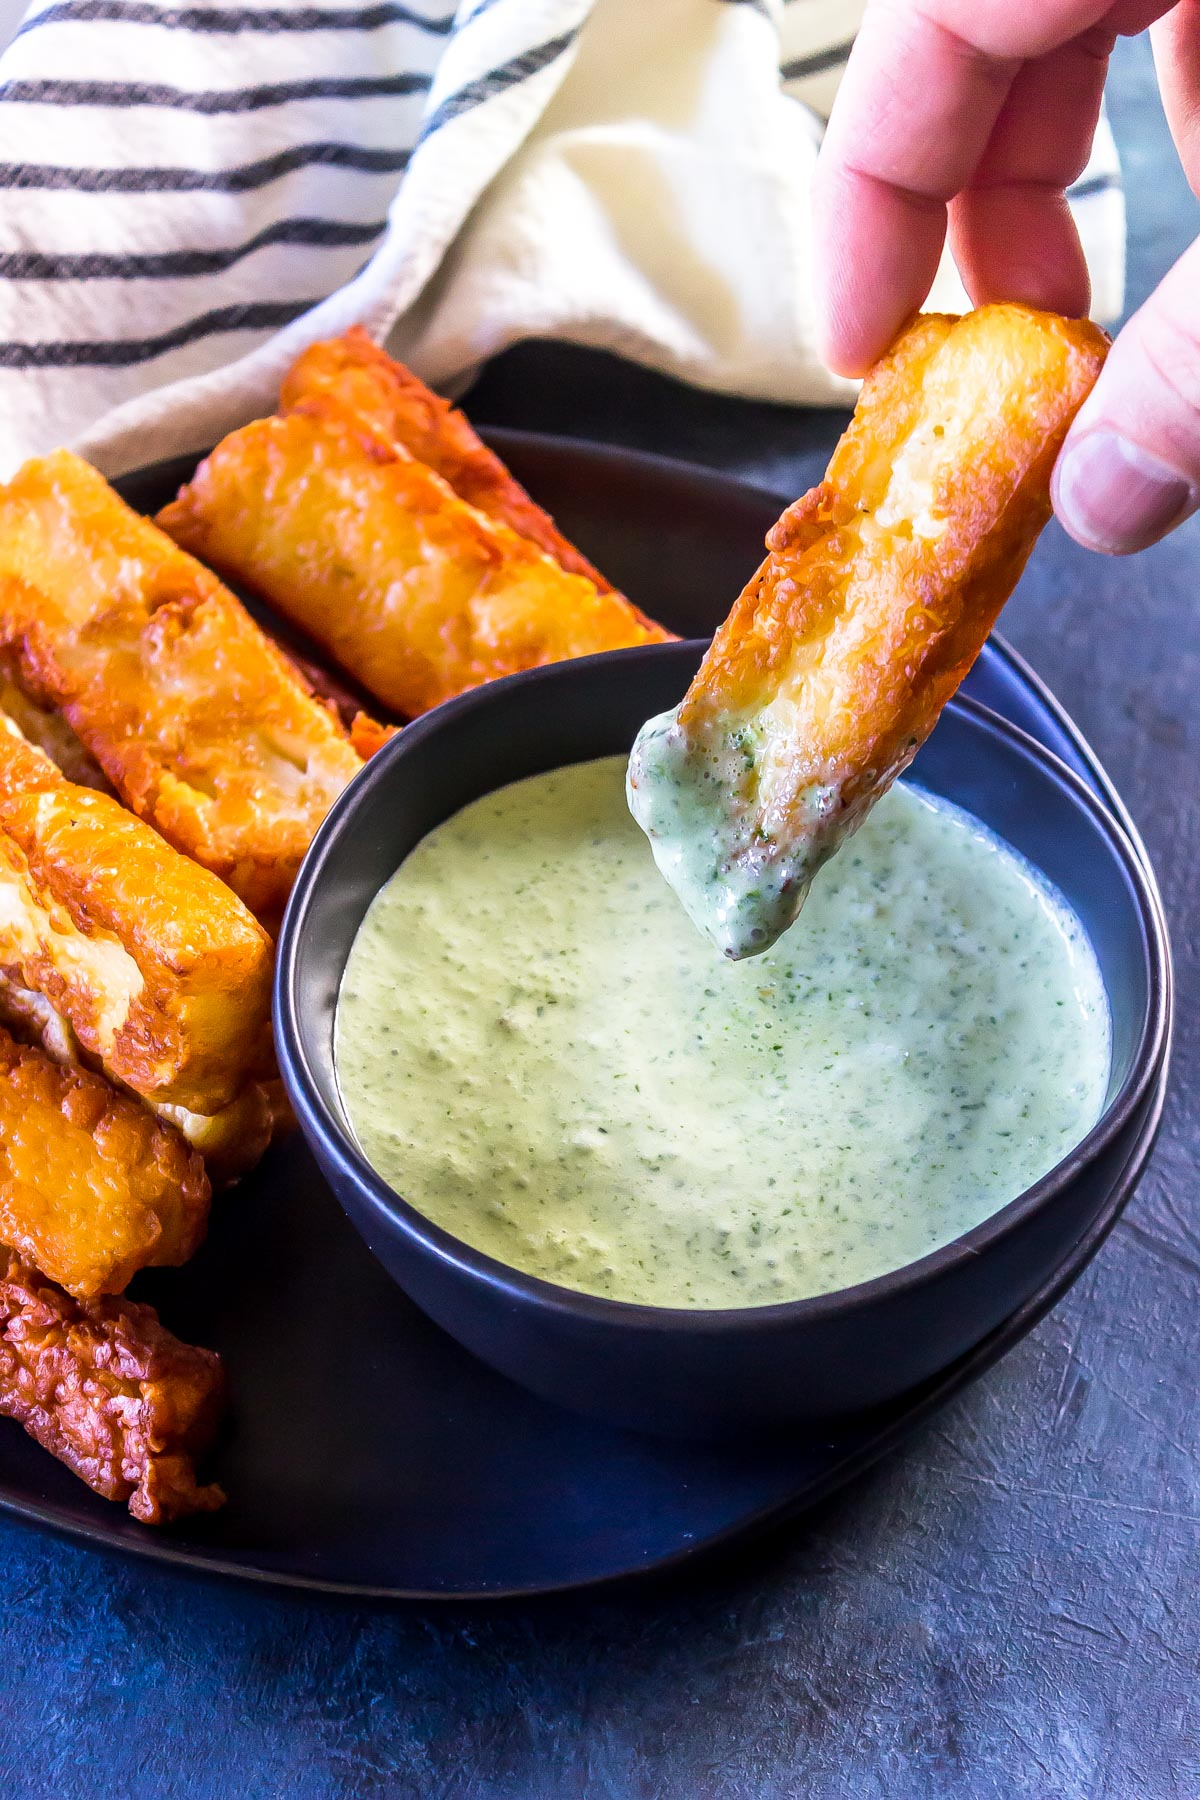 Keto Halloumi Fries being dipped into indian style yogurt based sauce